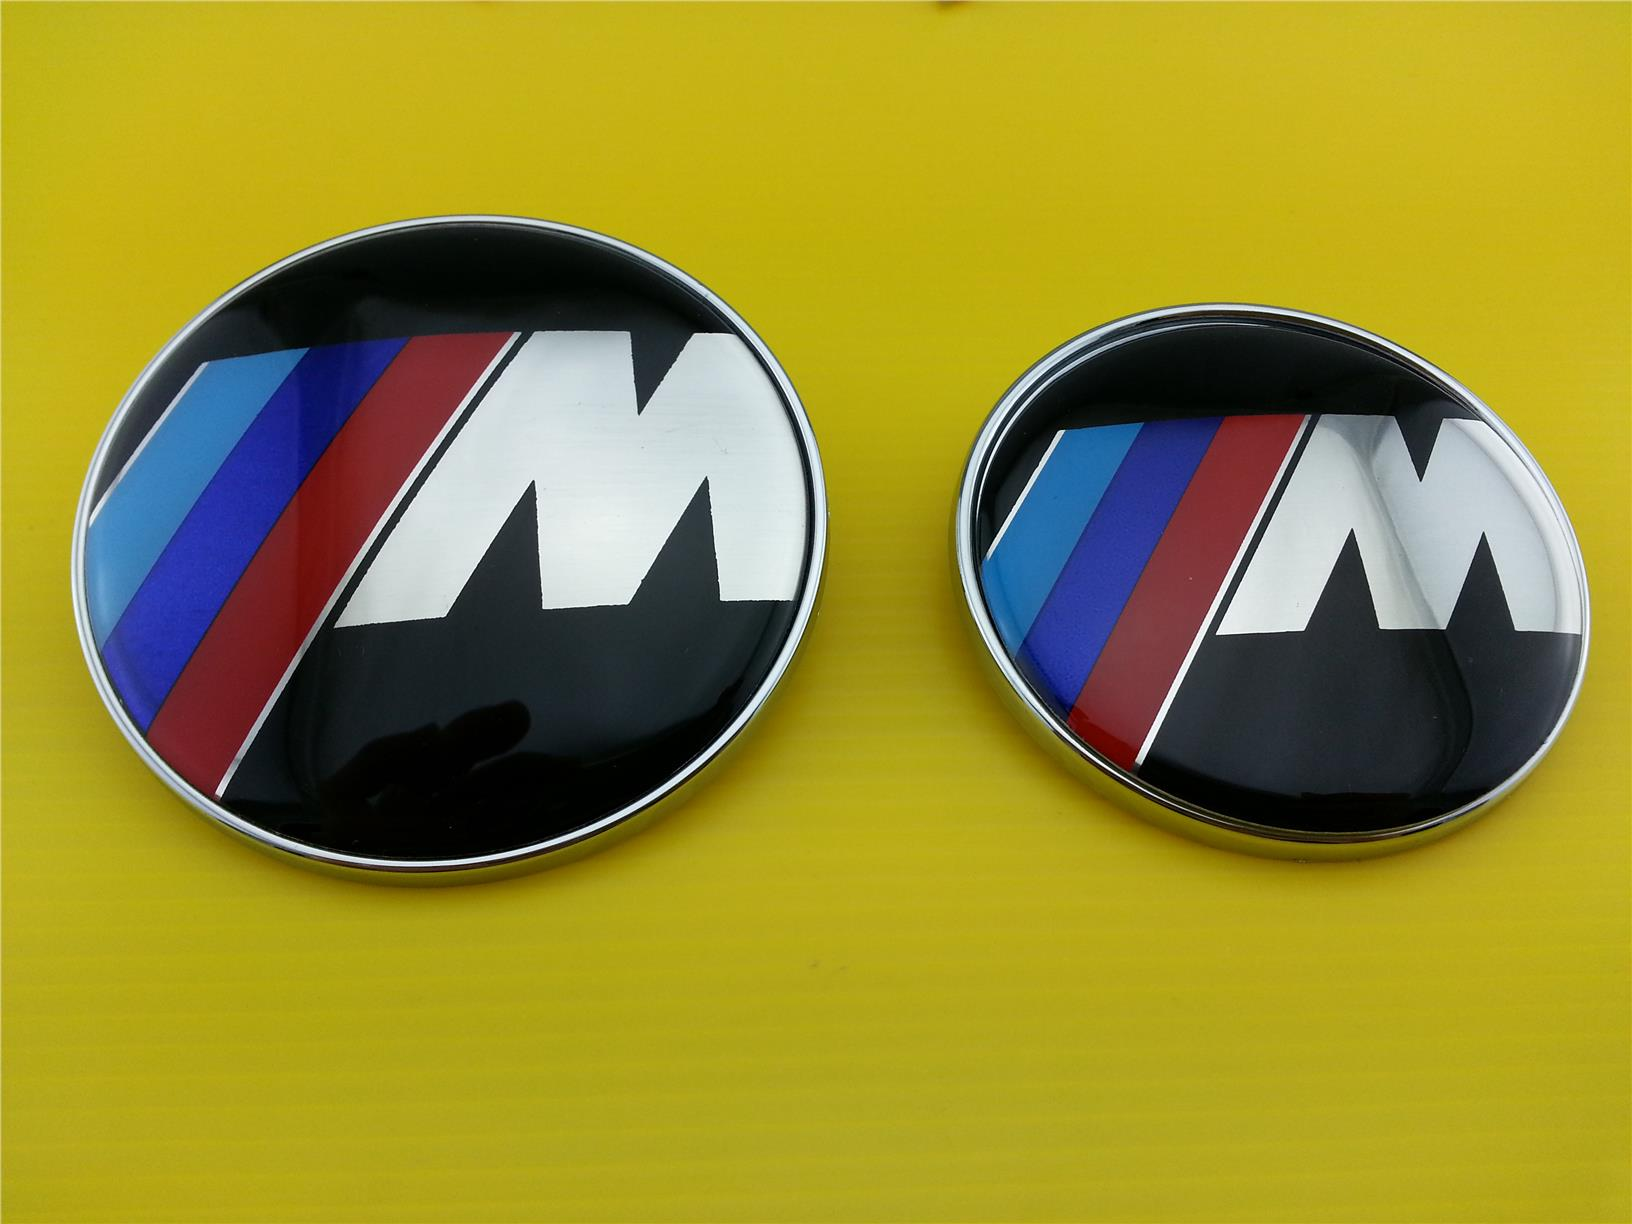 High quality bmw m sport logo front o end 452016 939 pm high quality bmw m sport logo front or rear size 73mm 82mm 2 pins buycottarizona Gallery